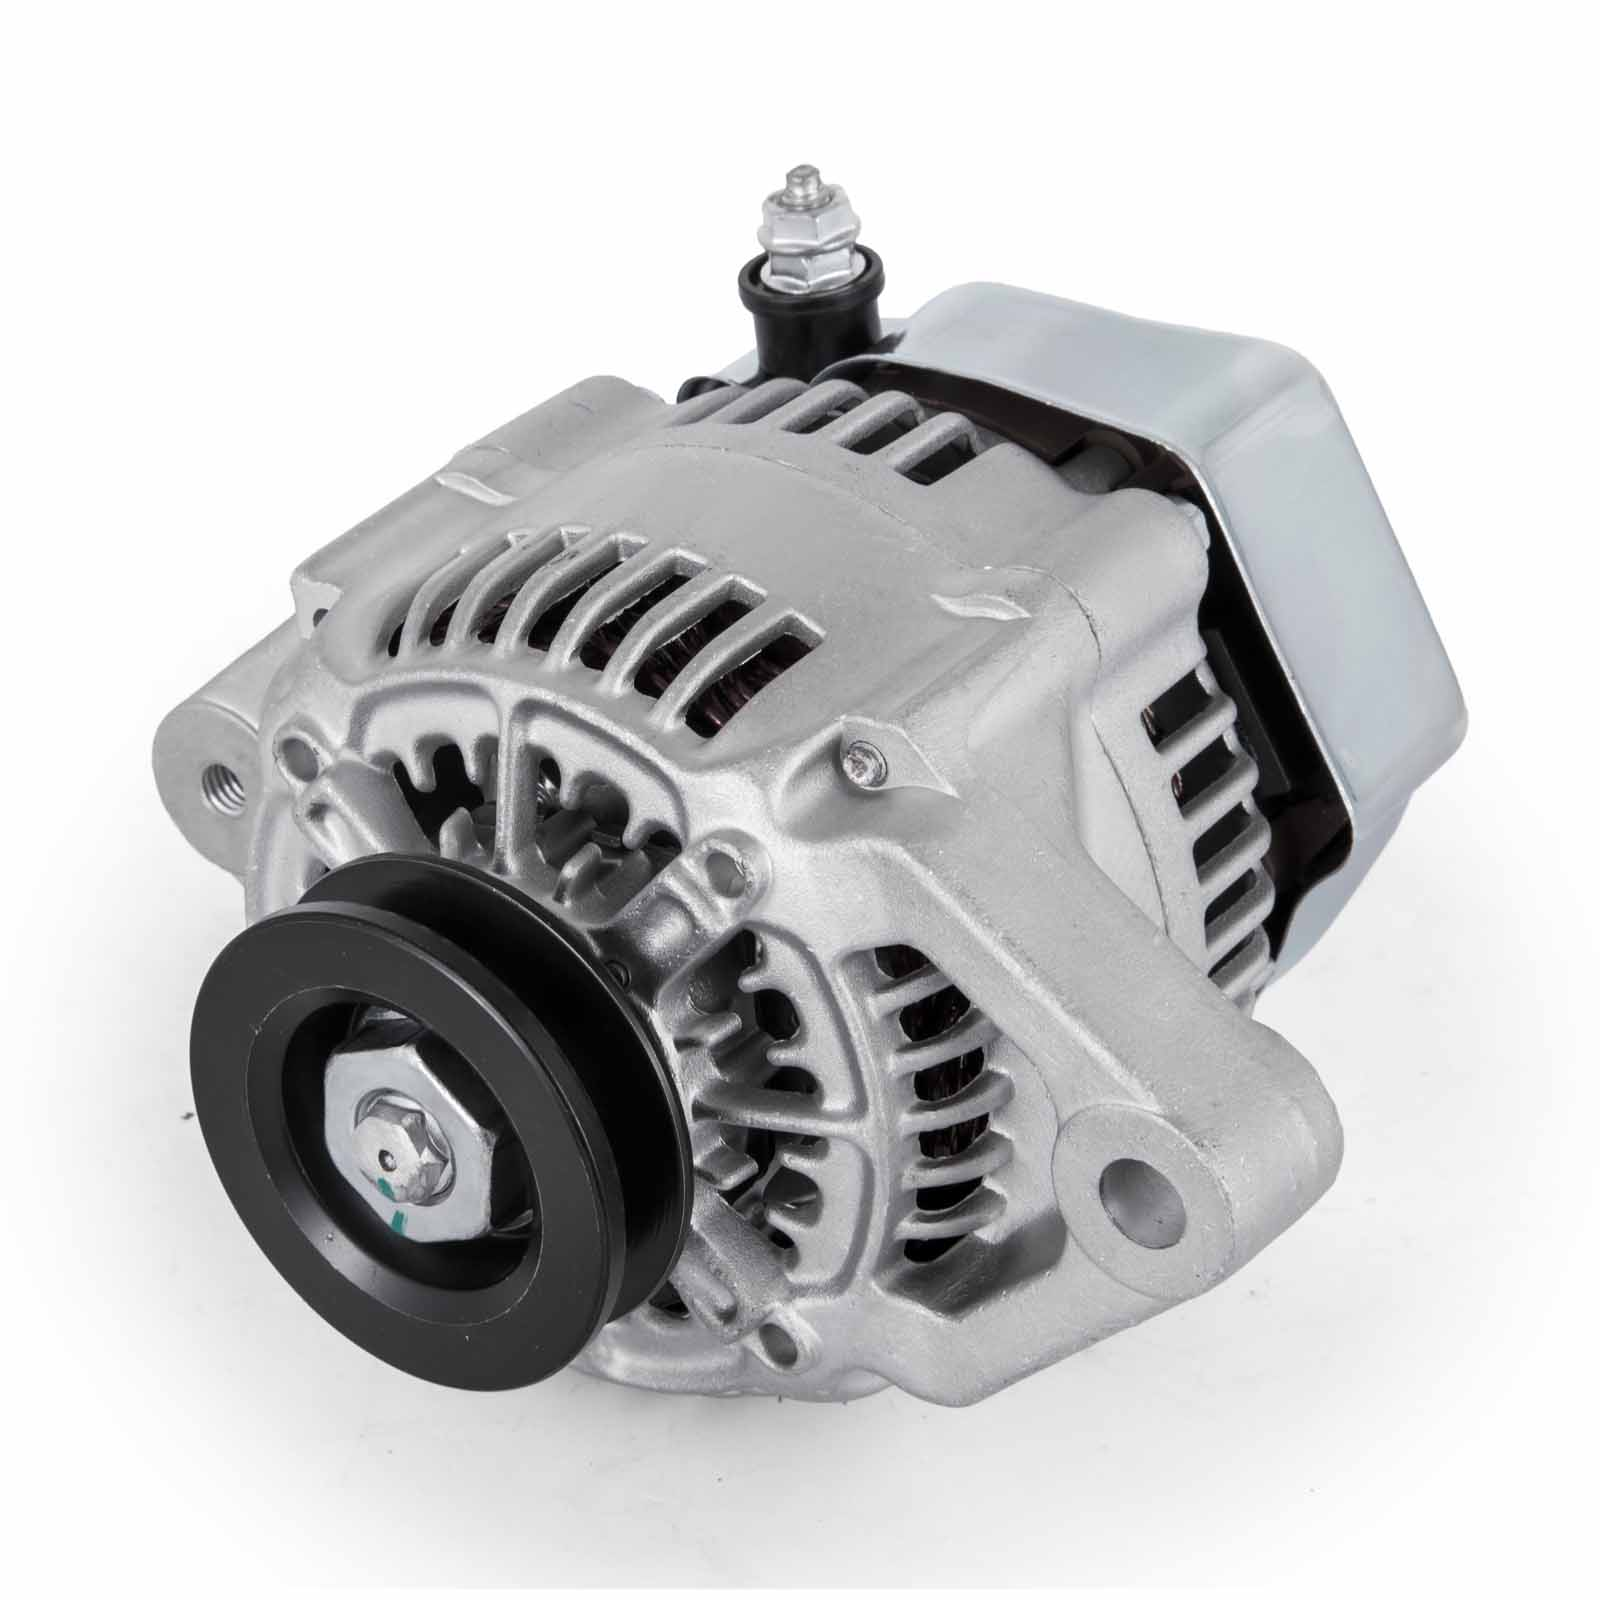 Hq Mini Alternator For Denso Street Rod Race 1 Wire One 70 Amp Yanmar Wiring Diagram Watch This Item Email A Friend